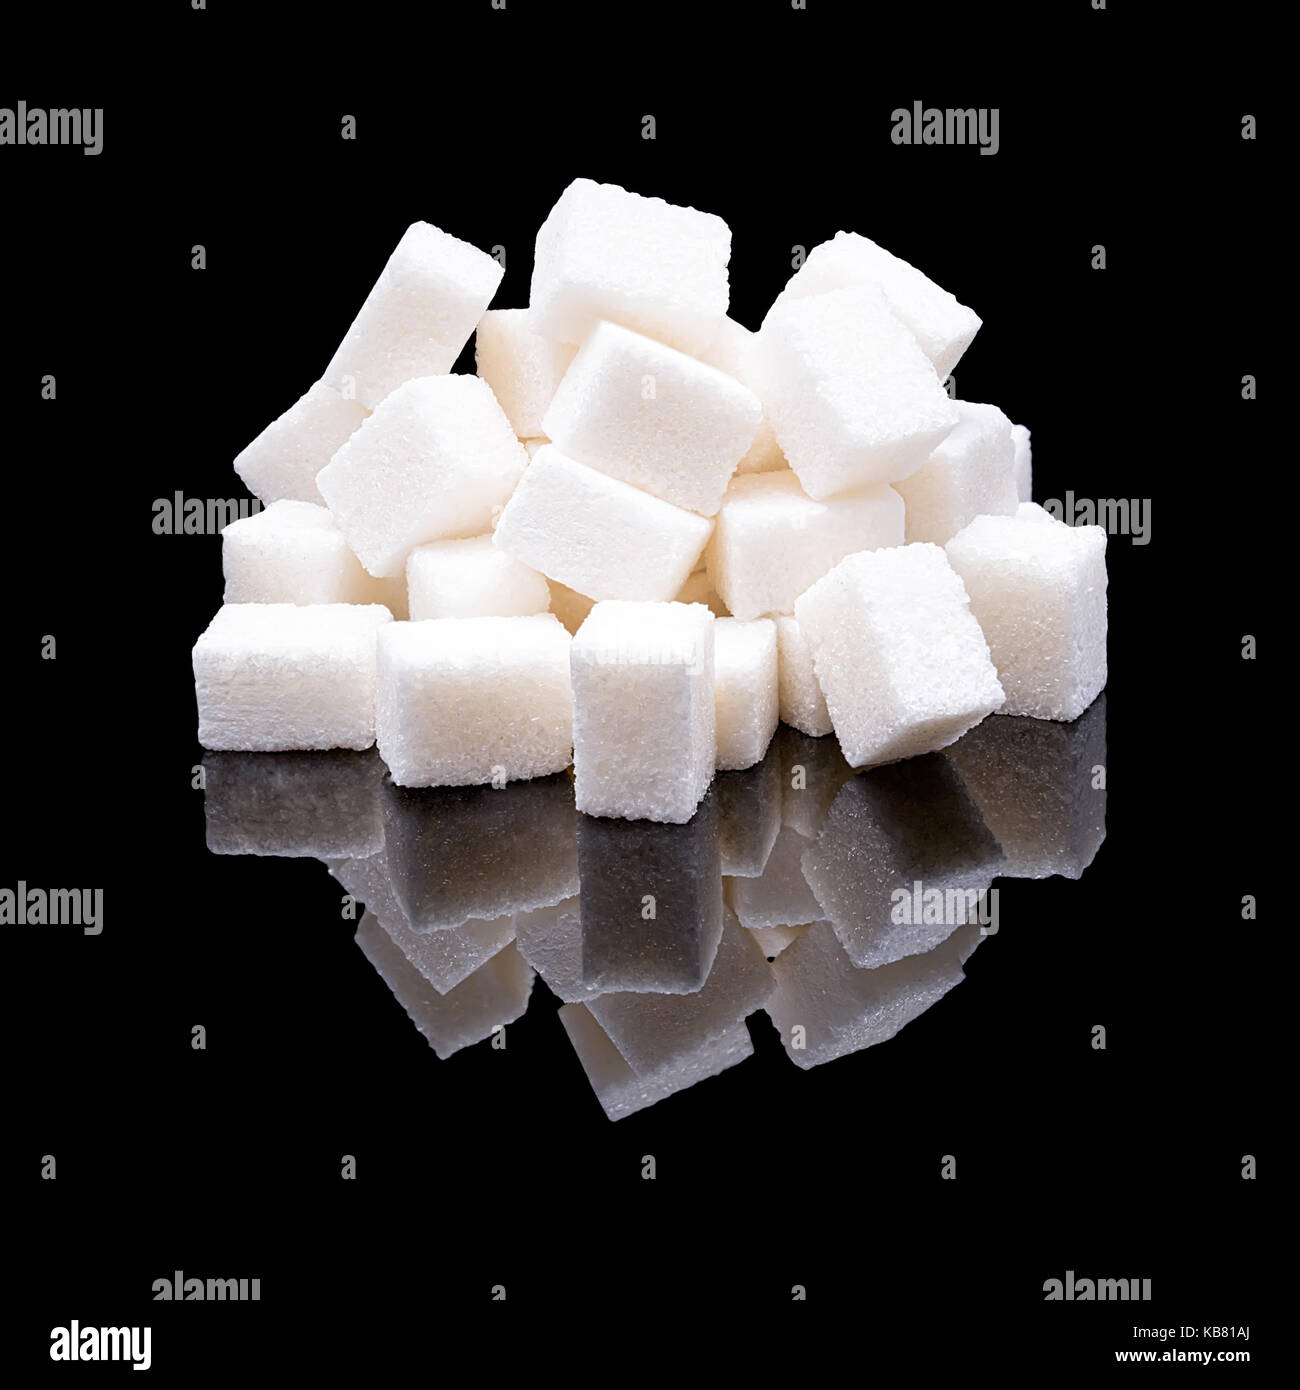 Cubes of white sugar from sugar beet with a real reflection on a black glossy background - Stock Image